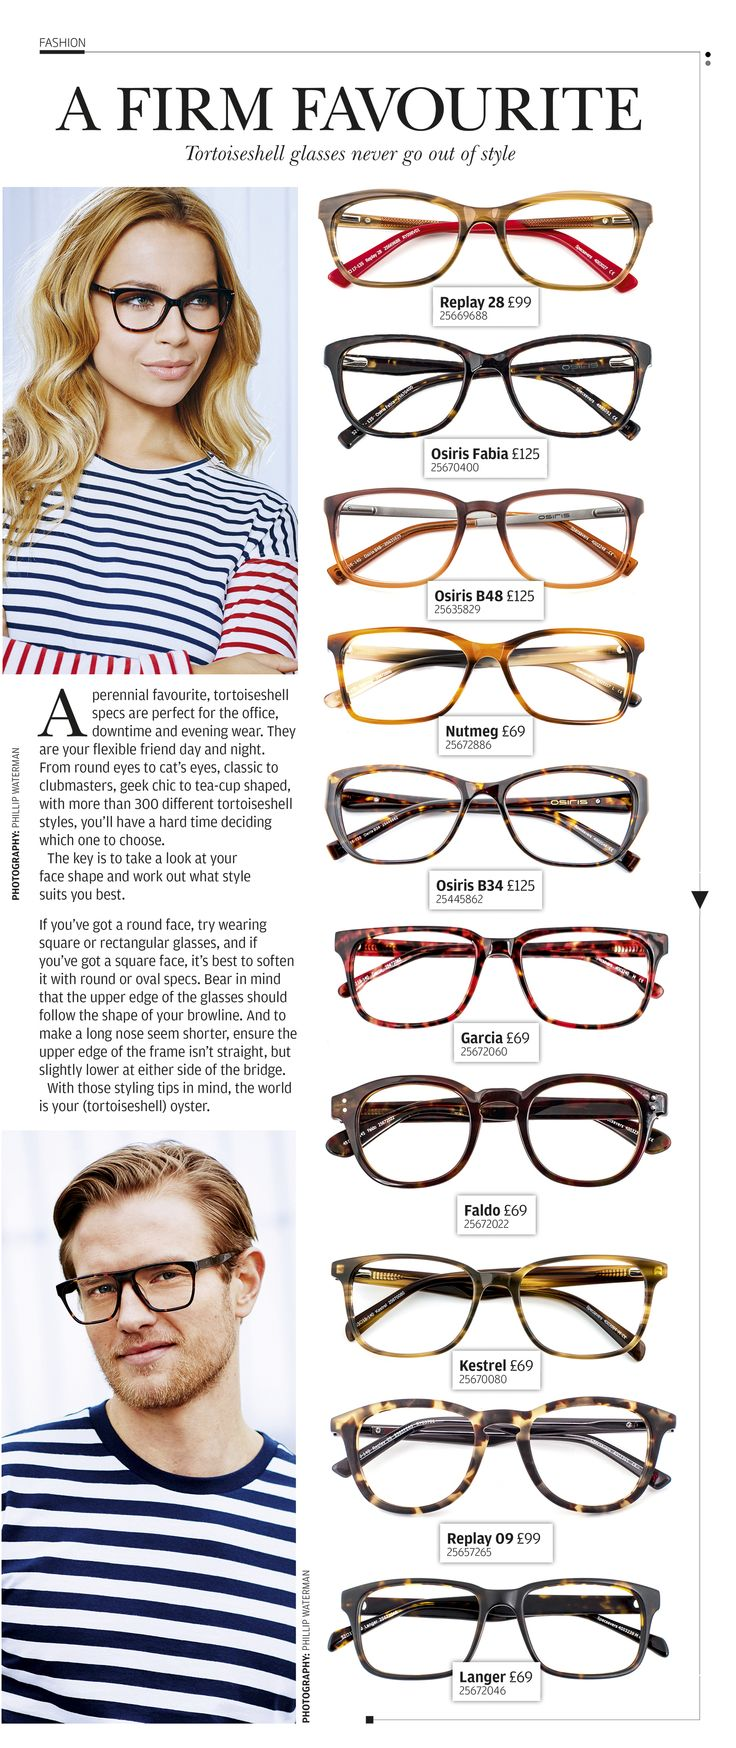 A perennial favourite, tortoiseshell specs are perfect for the office, downtime and evening wear.